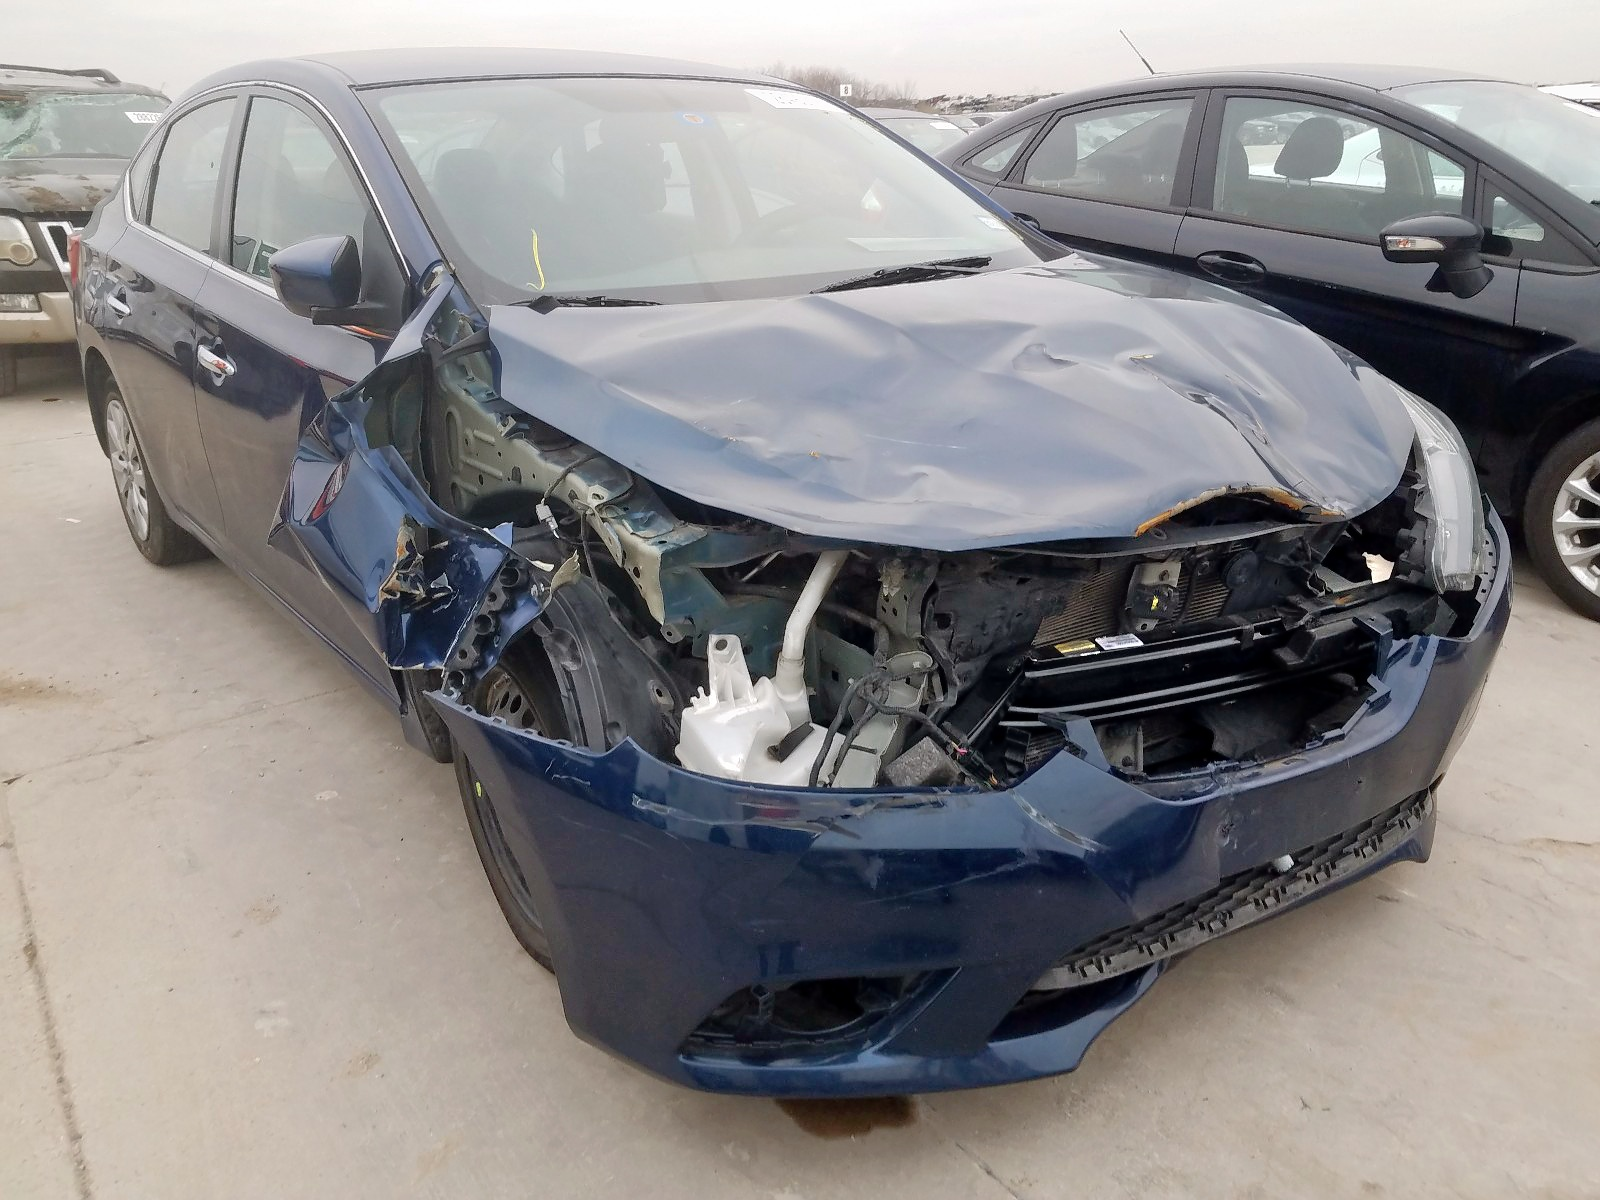 3N1AB7AP0GY210796 - 2016 Nissan Sentra S 1.8L Left View